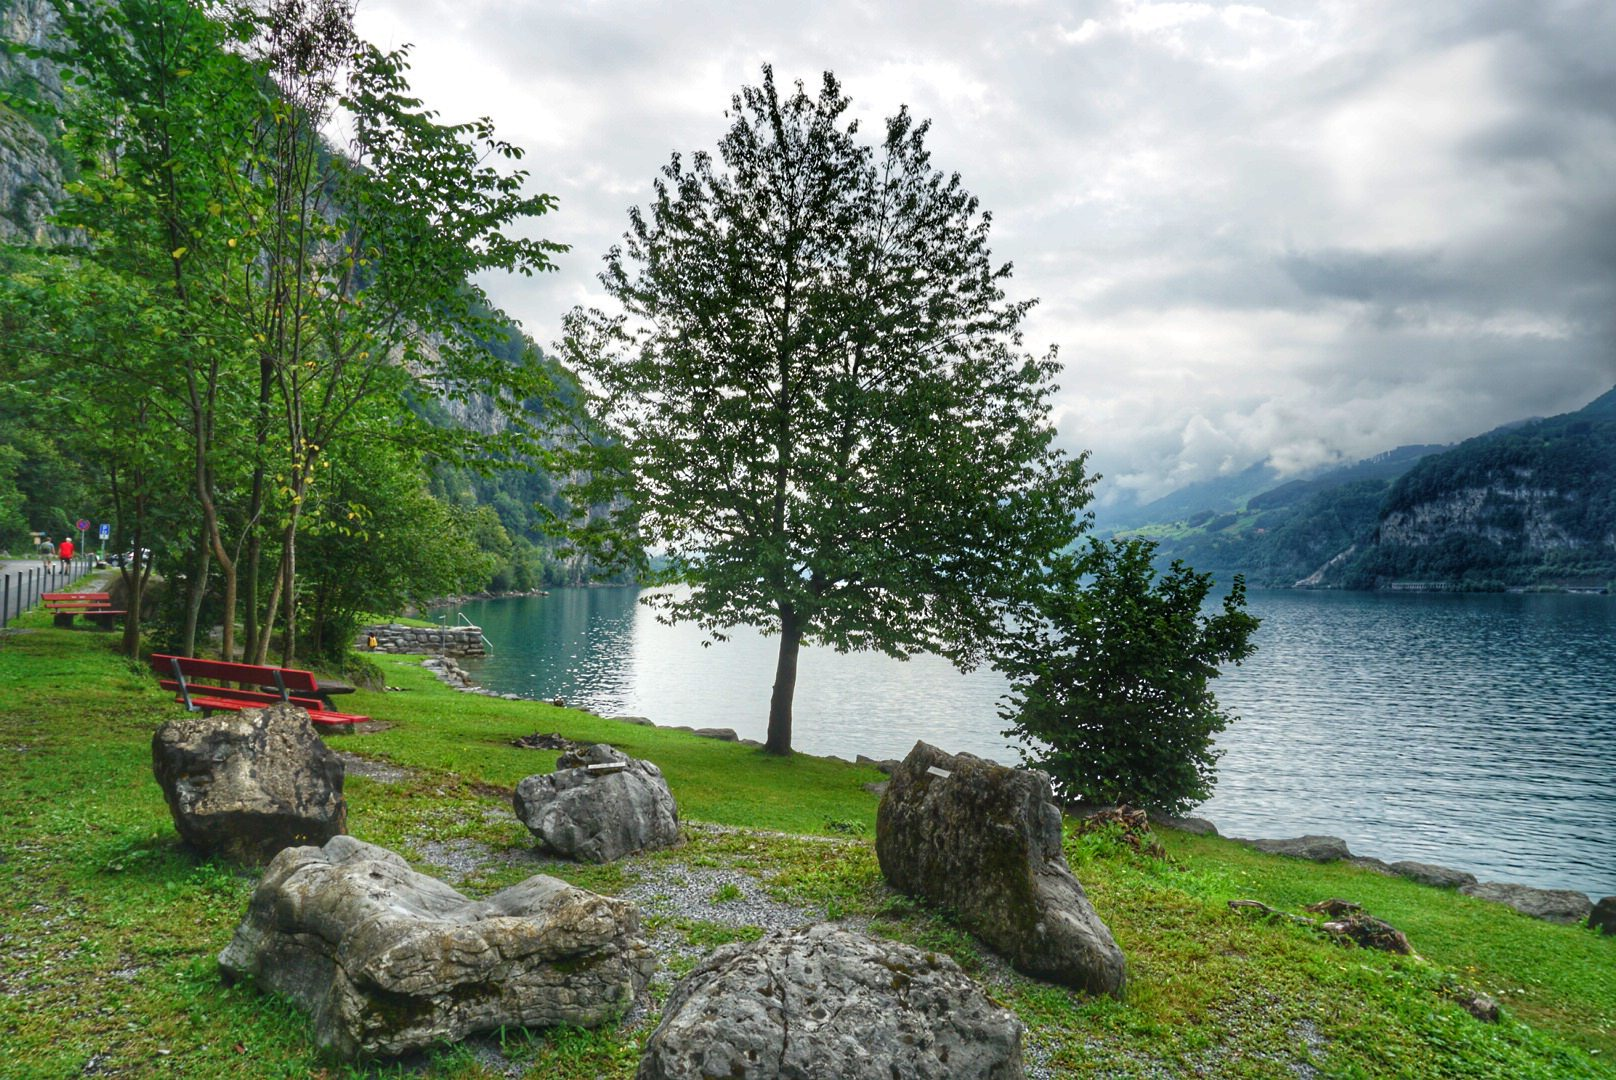 Day trip from Zurich to Lake Walen